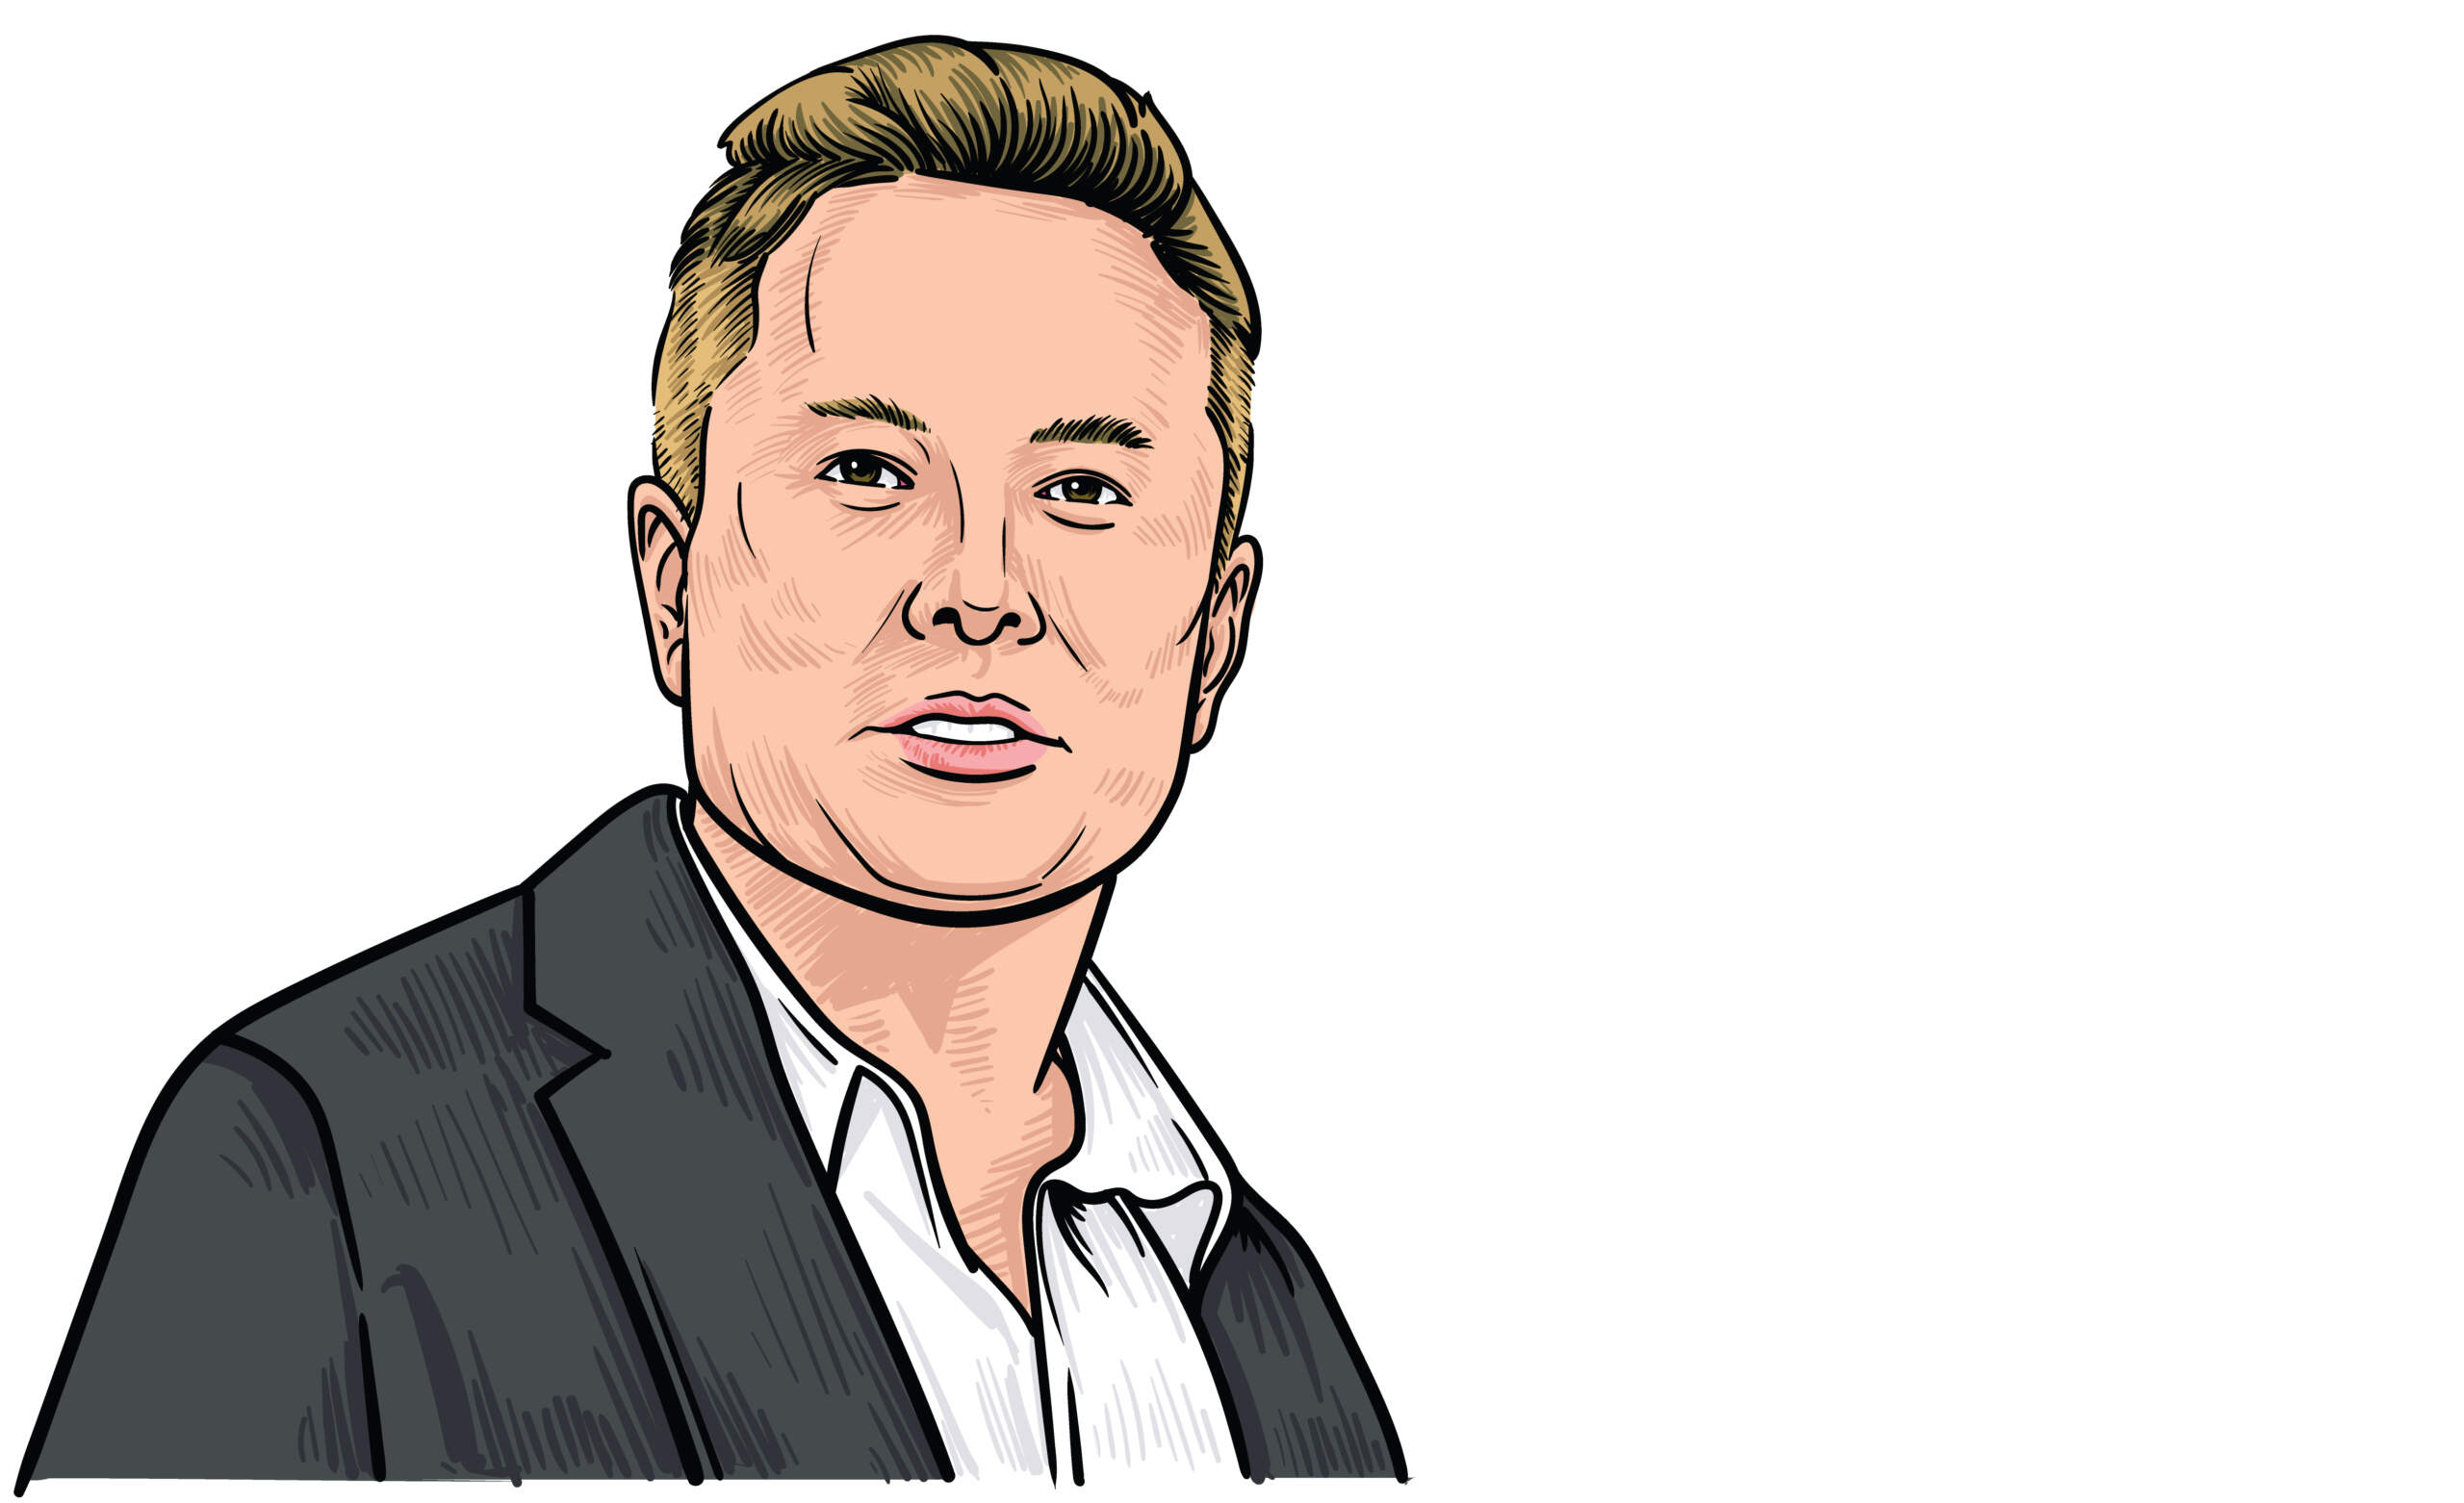 Tesla CEO Elon Musk On The Verge Of A $1.8 Billion Payday - Autoversed